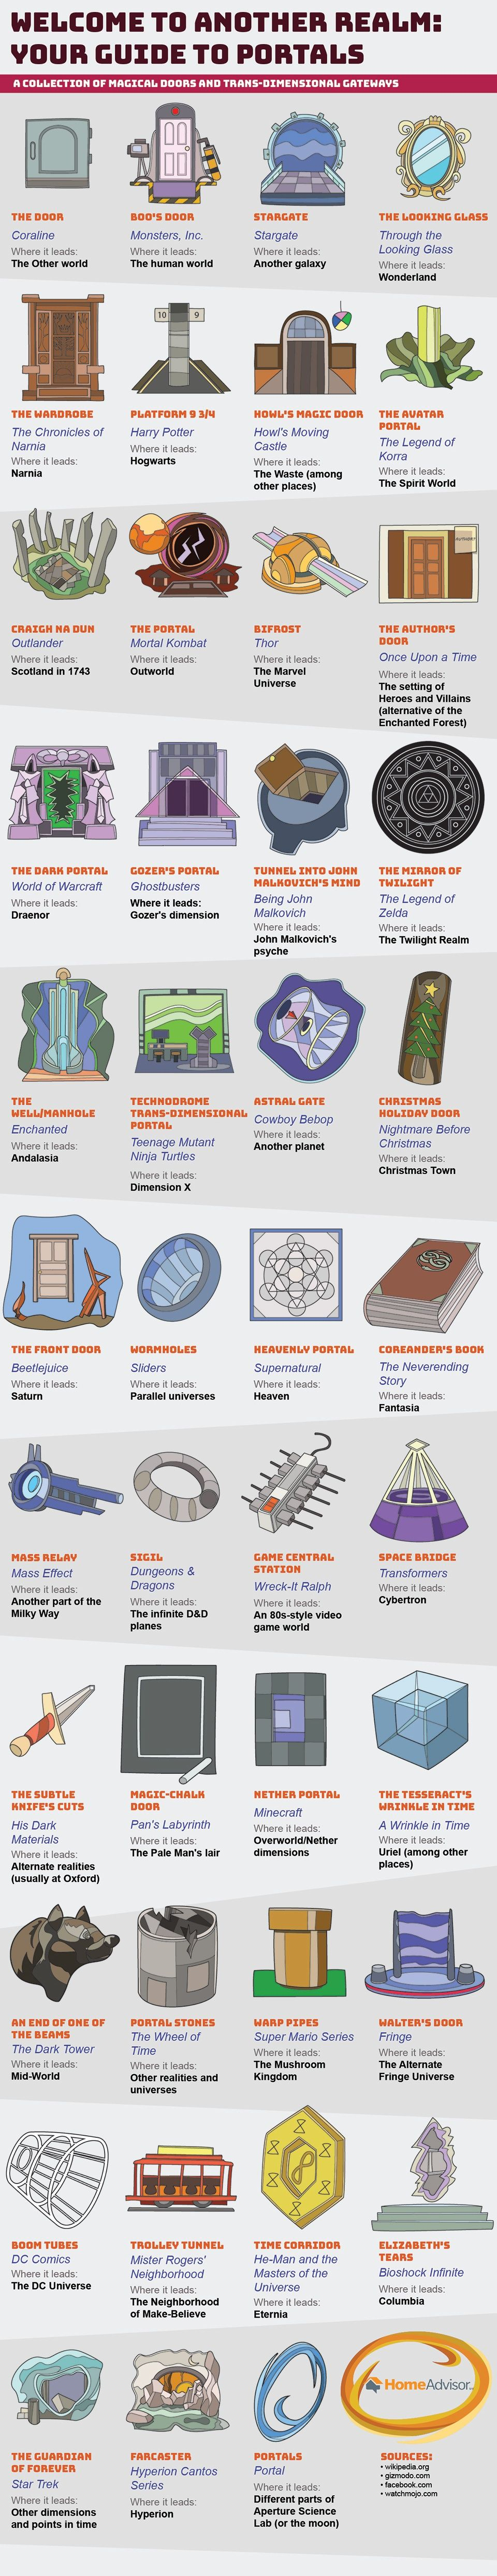 Welcome To Another Realm: Your Guide to Portals #Infographic